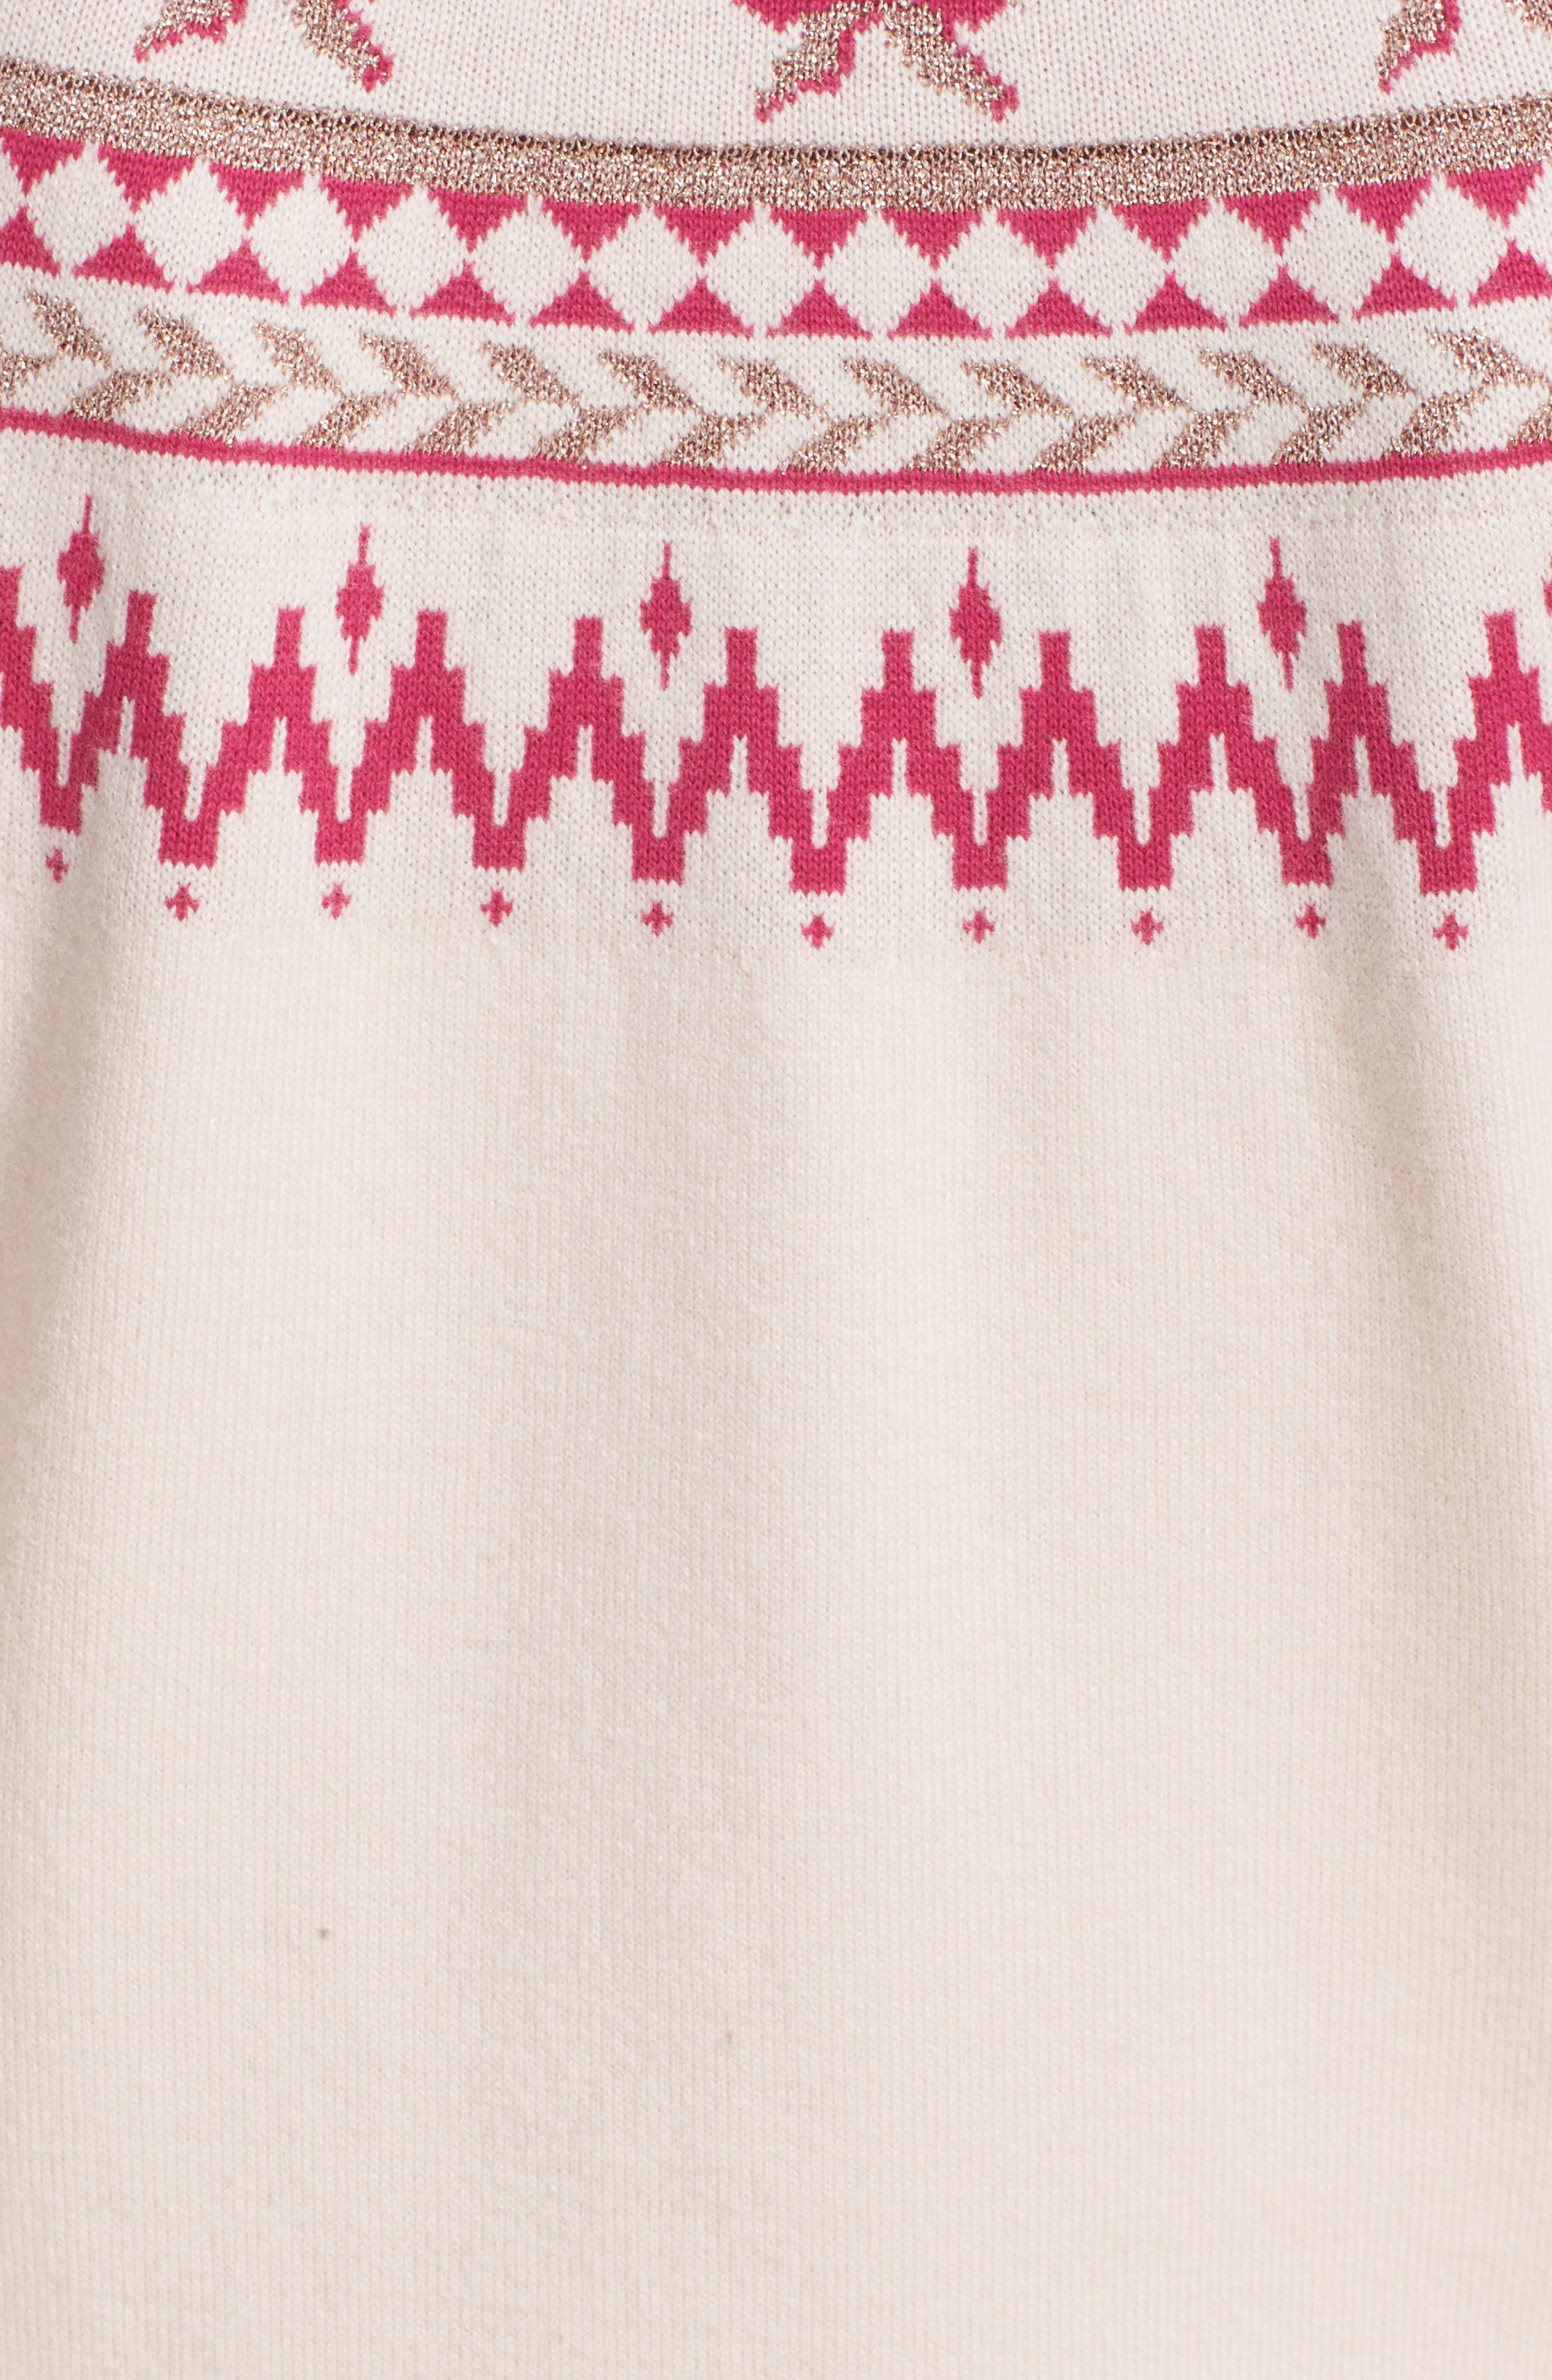 TED BAKER LONDON,                             Merry Woofmas Fair Isle Pullover,                             Alternate thumbnail 5, color,                             272